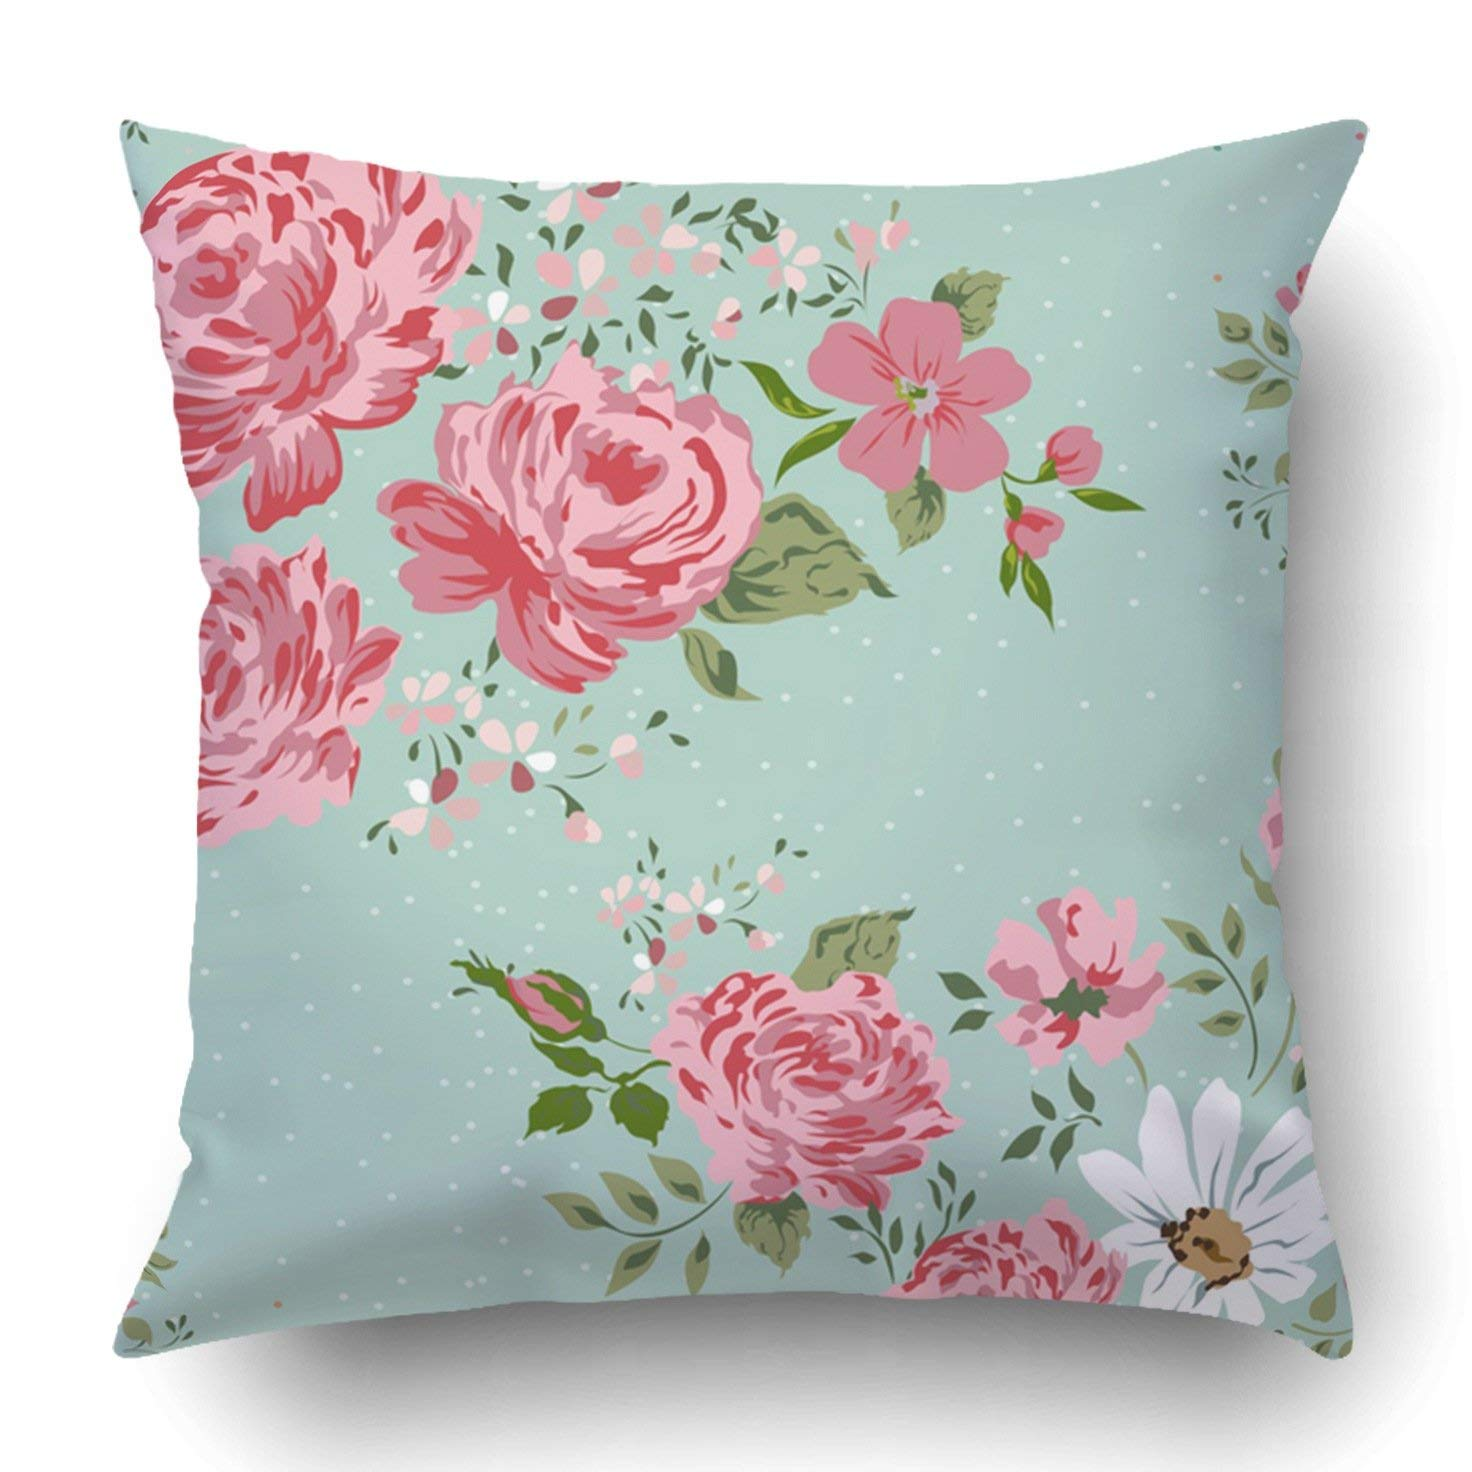 BPBOP Pink Anniversary Vintage Floral Pattern Border Of Flowers Rose Peony Chamomile Pillowcase Cover Cushion 18x18 inch